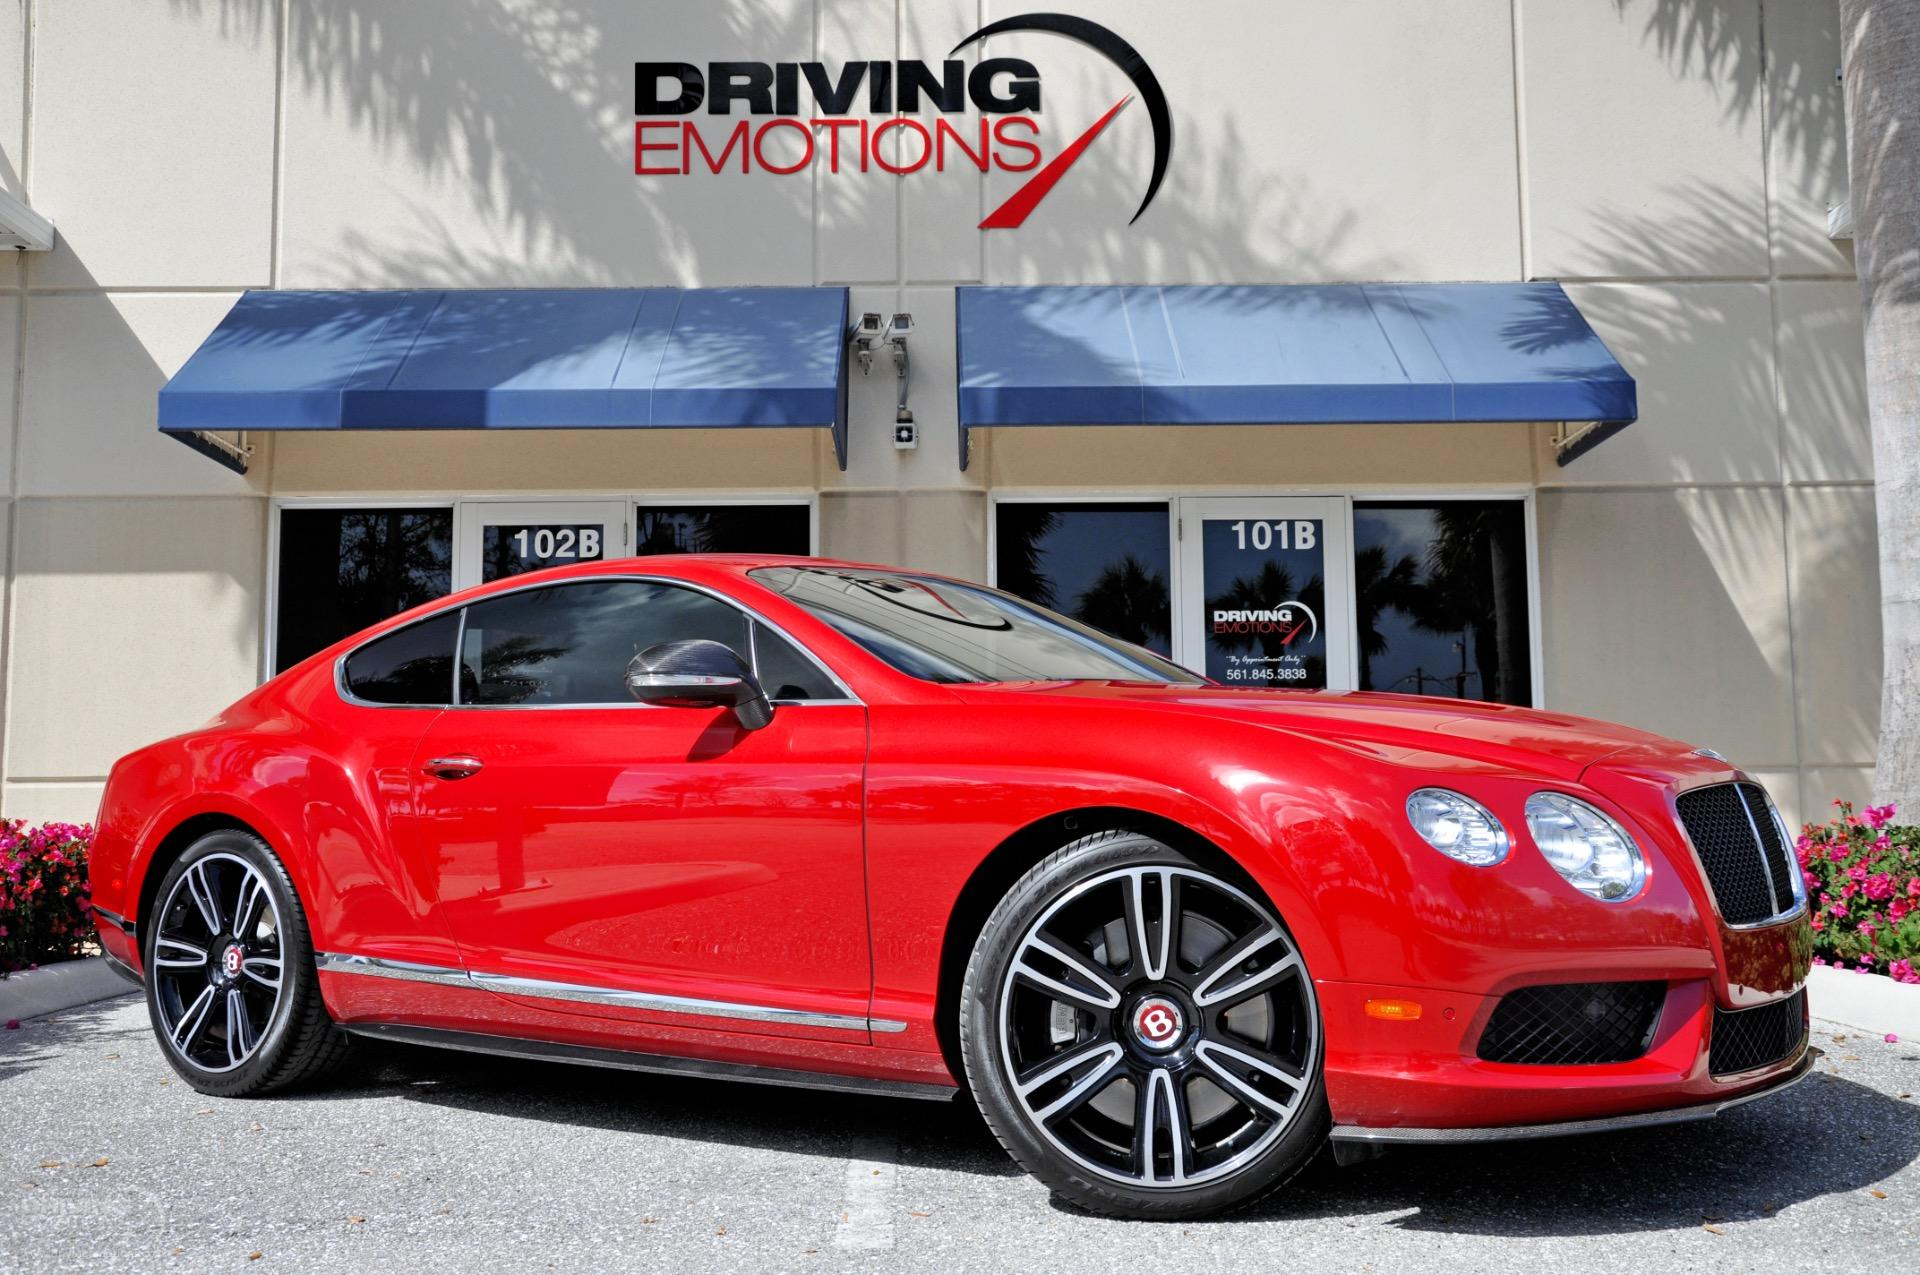 2013 bentley continental gt v8 coupe stock 5929 for sale near used 2013 bentley continental gt v8 coupe lake park fl vanachro Choice Image